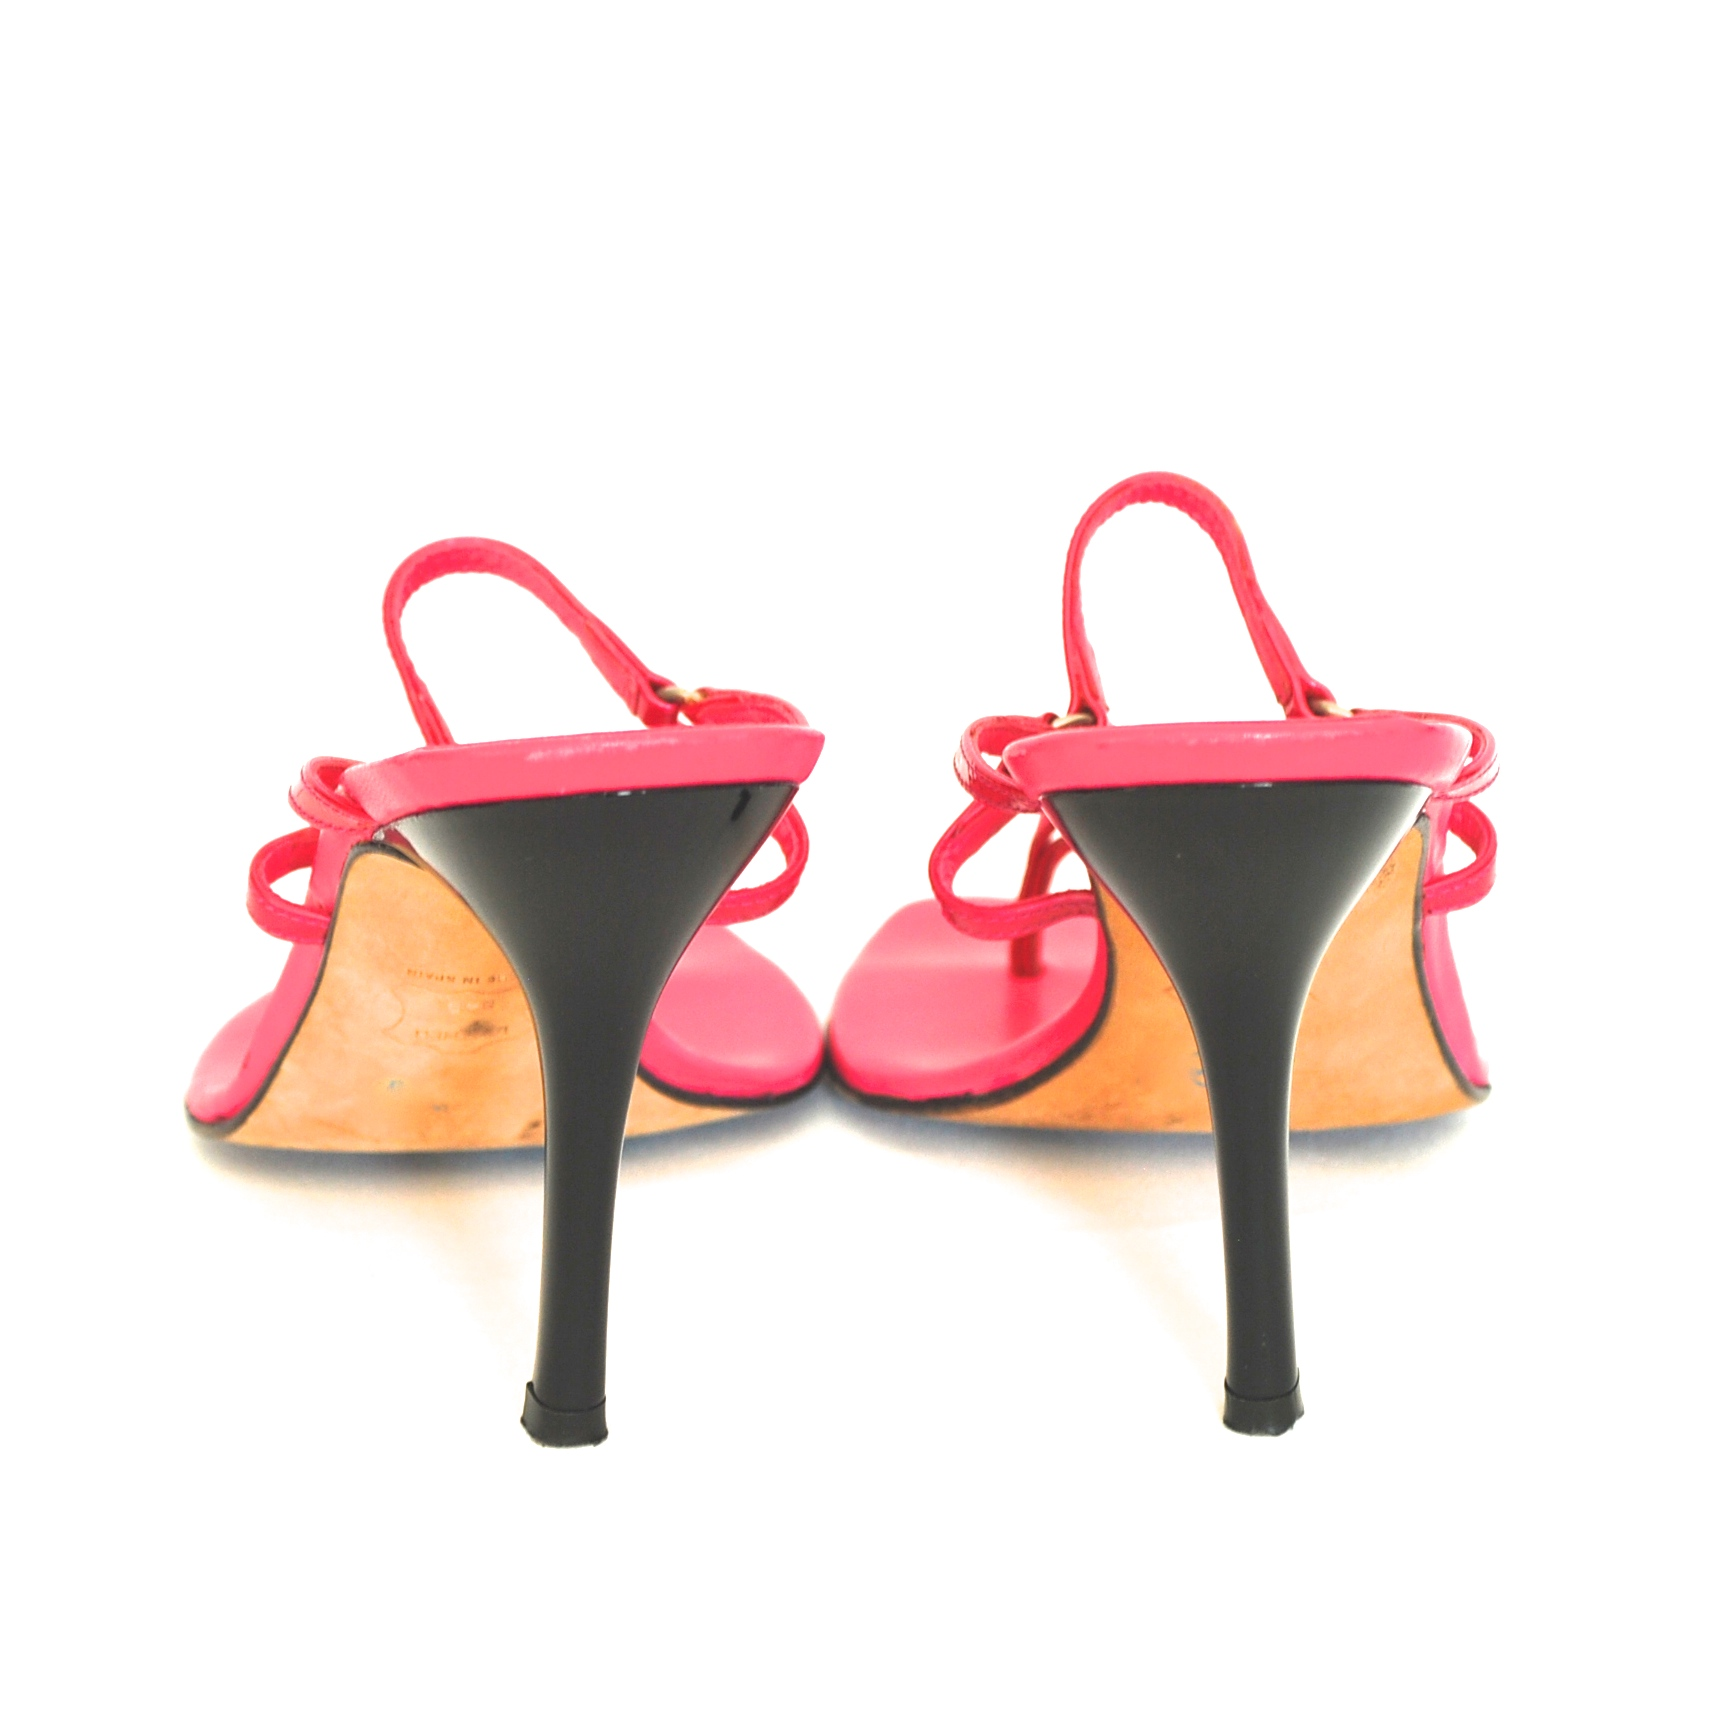 b6a8d073419 Stuart Weitzman Hot Pink High Heel Strappy Sandals With Leather Soles –  Spain